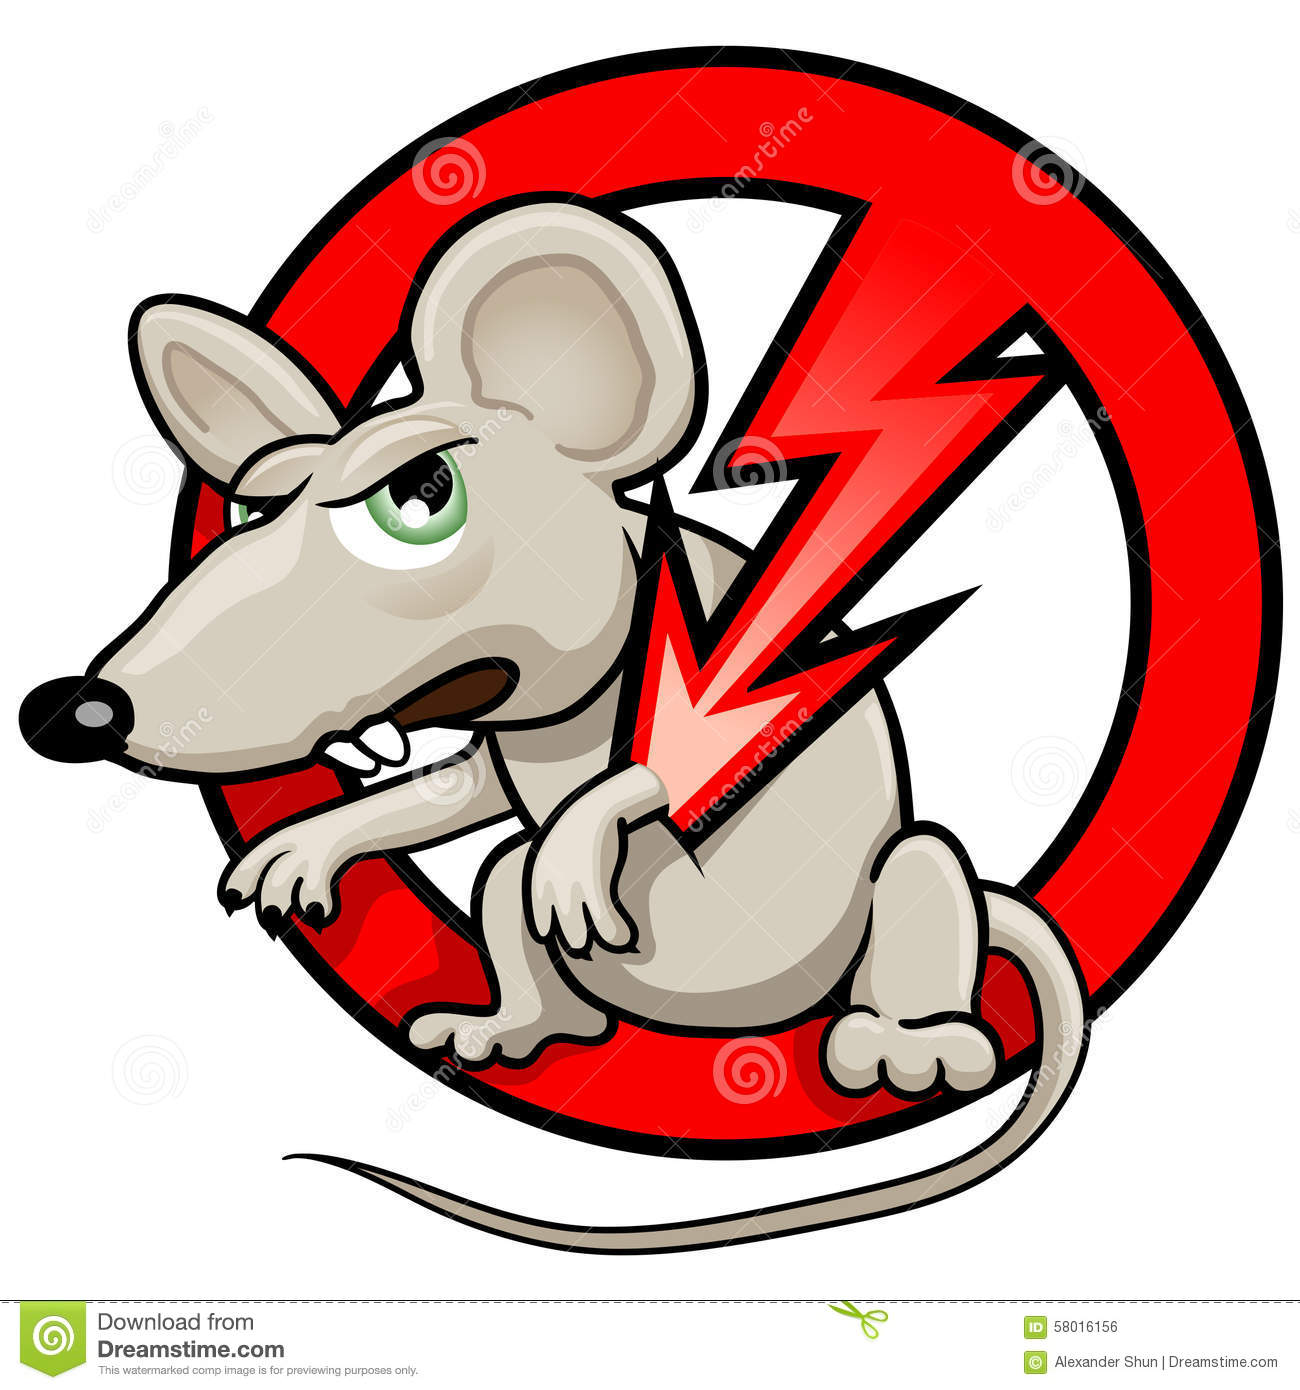 funny-vector-illustration-no-rats-symbol-pest-control-sticker-cartoon-rat-red-circle-58016156.jpg